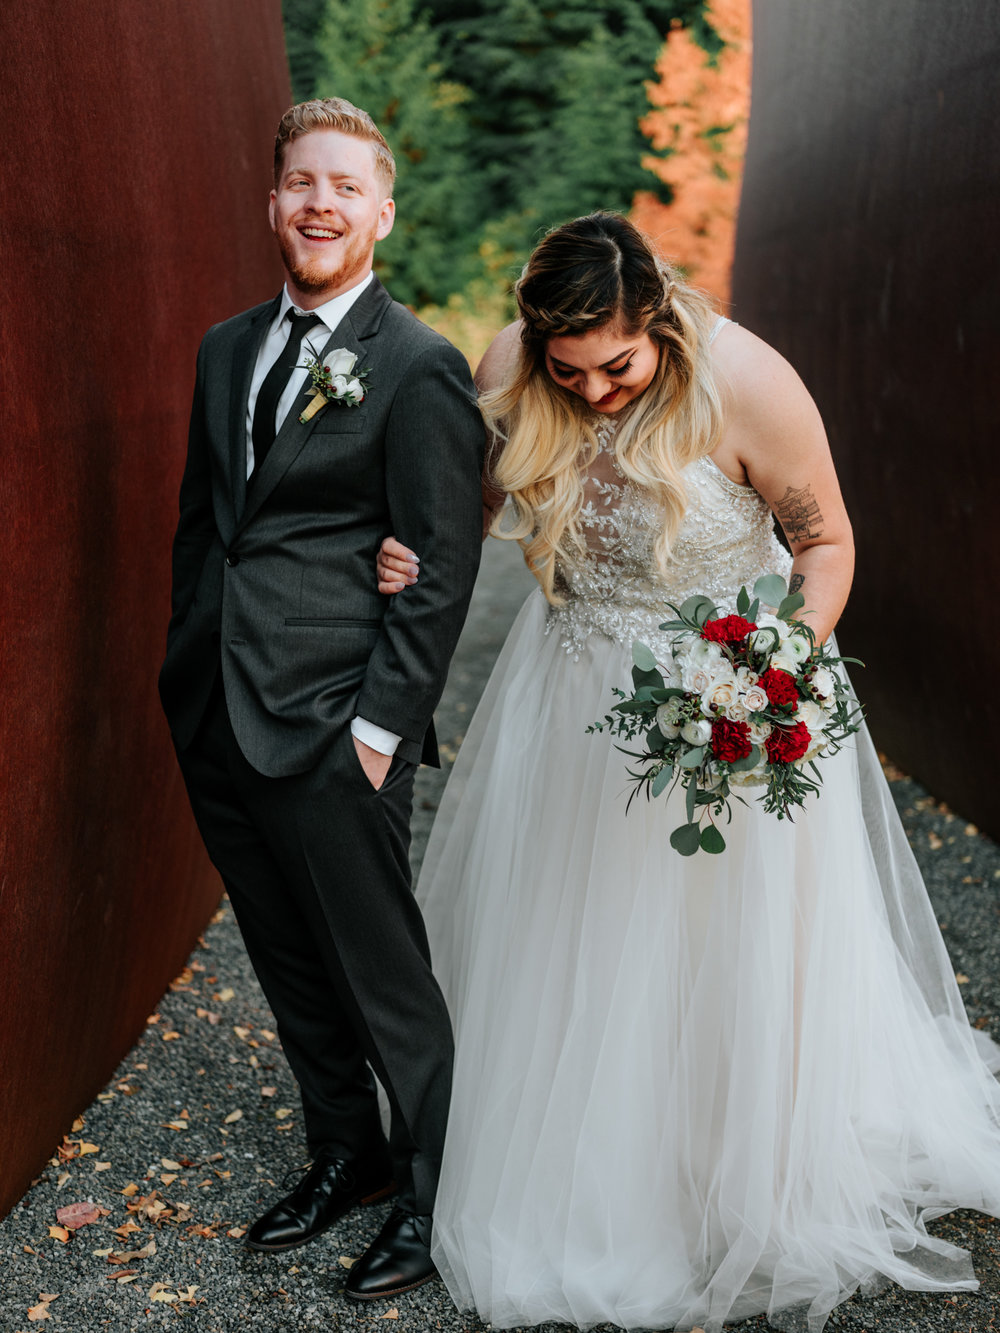 Stolen Glimpses Seattle Wedding Photographers 33.jpg